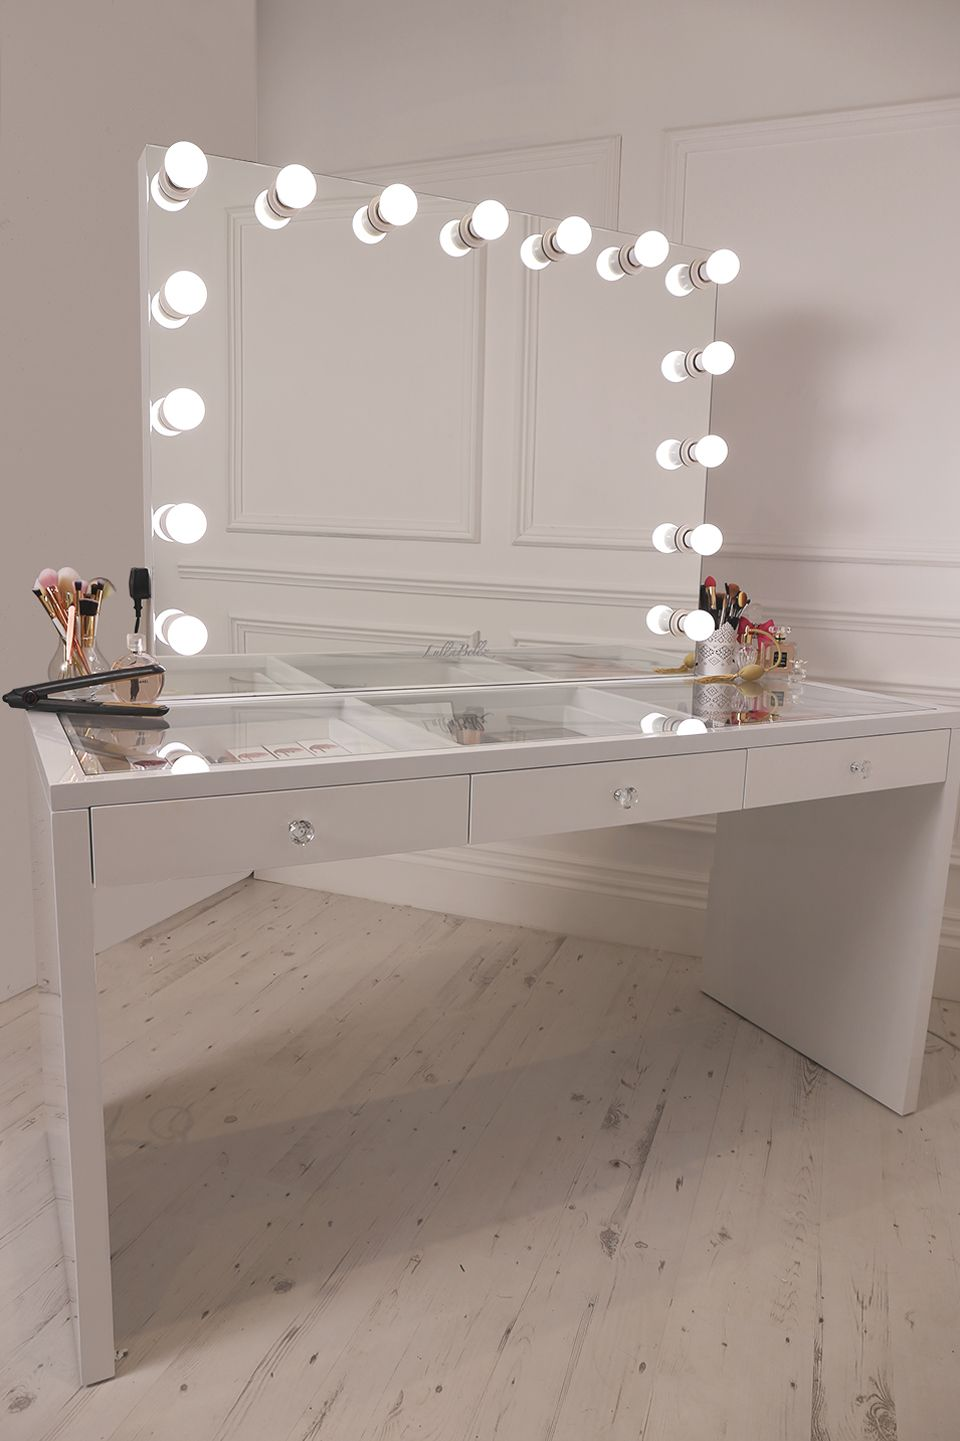 Vanity Mirror With Lights And Drawers : crisp white finish Slaystation make up vanity with premium storage, three spacious drawers ...